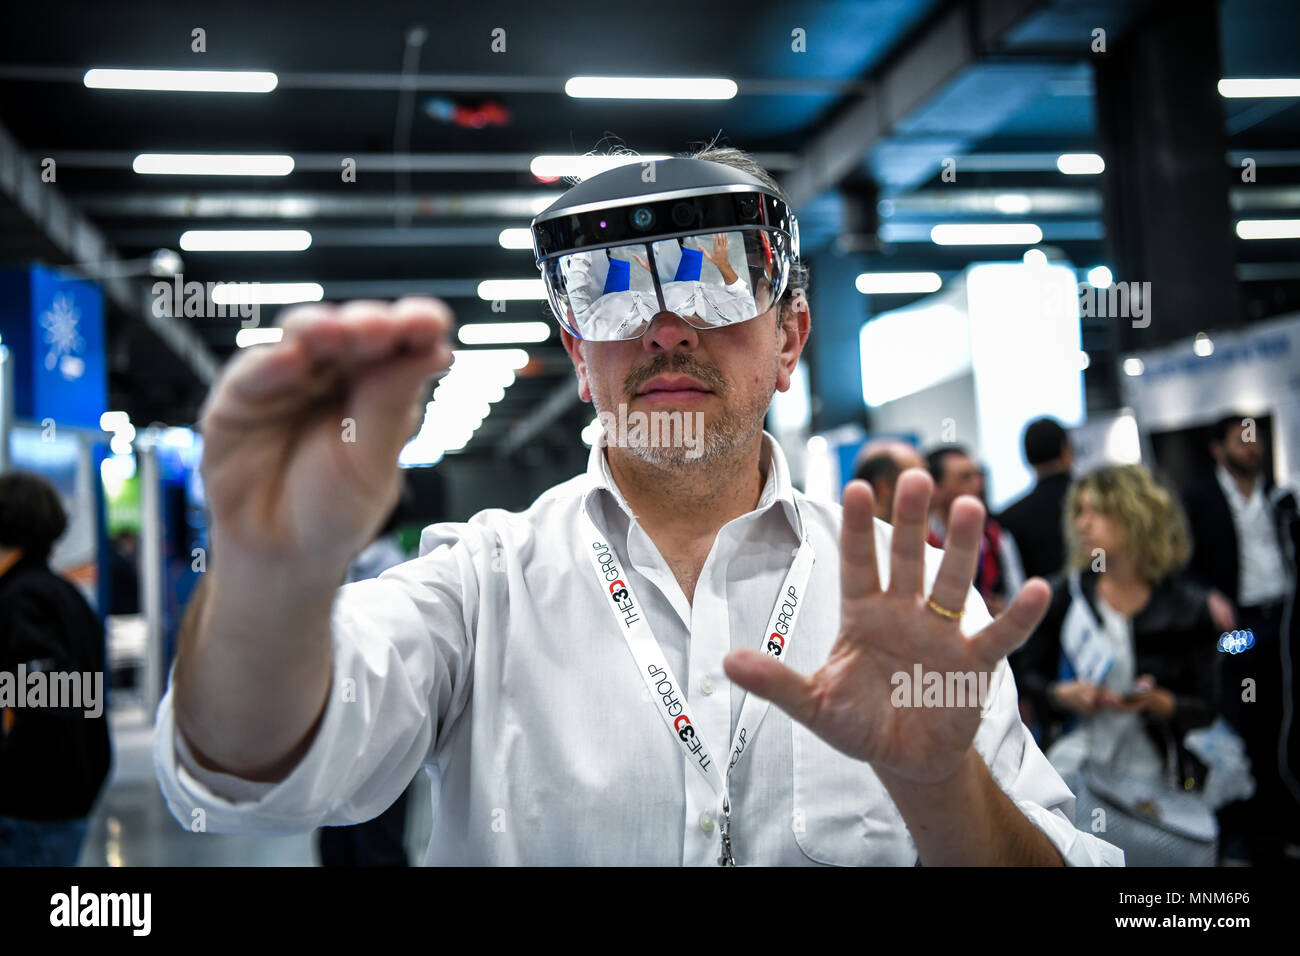 Milan, Italy - 17 May 2018: a man wearing a VR Virtual Reality headset gesticulates during the Technology Hub 2018. - Stock Image